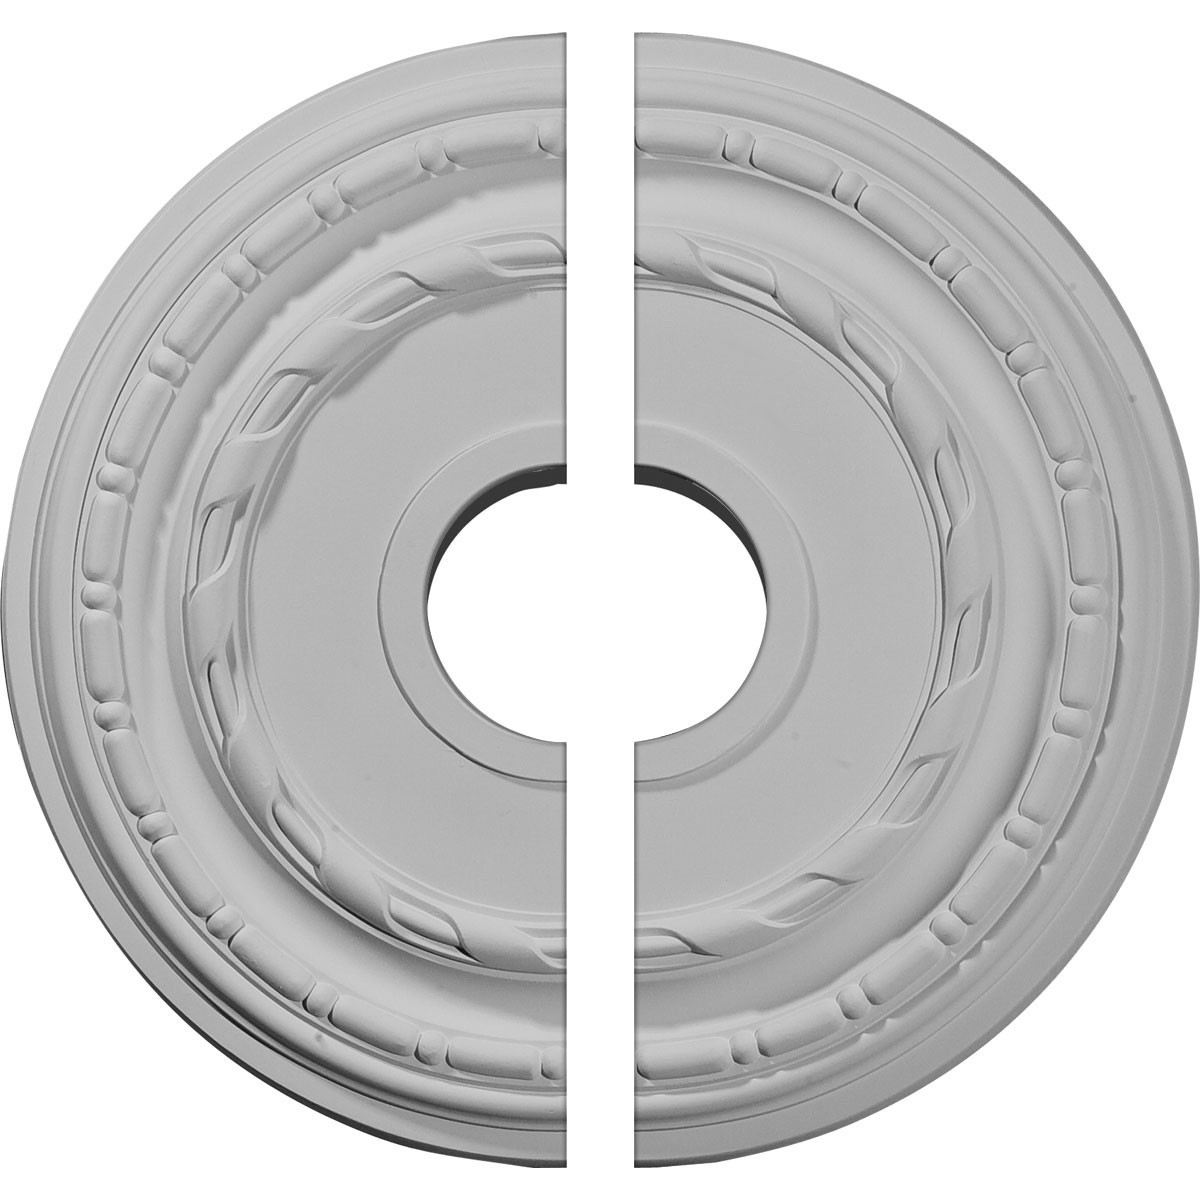 """EM-CM15DU2 - 15 3/8""""OD x 3 5/8""""ID x 1""""P Dublin Ceiling Medallion, Two Piece (Fits Canopies up to 8 1/4"""")"""